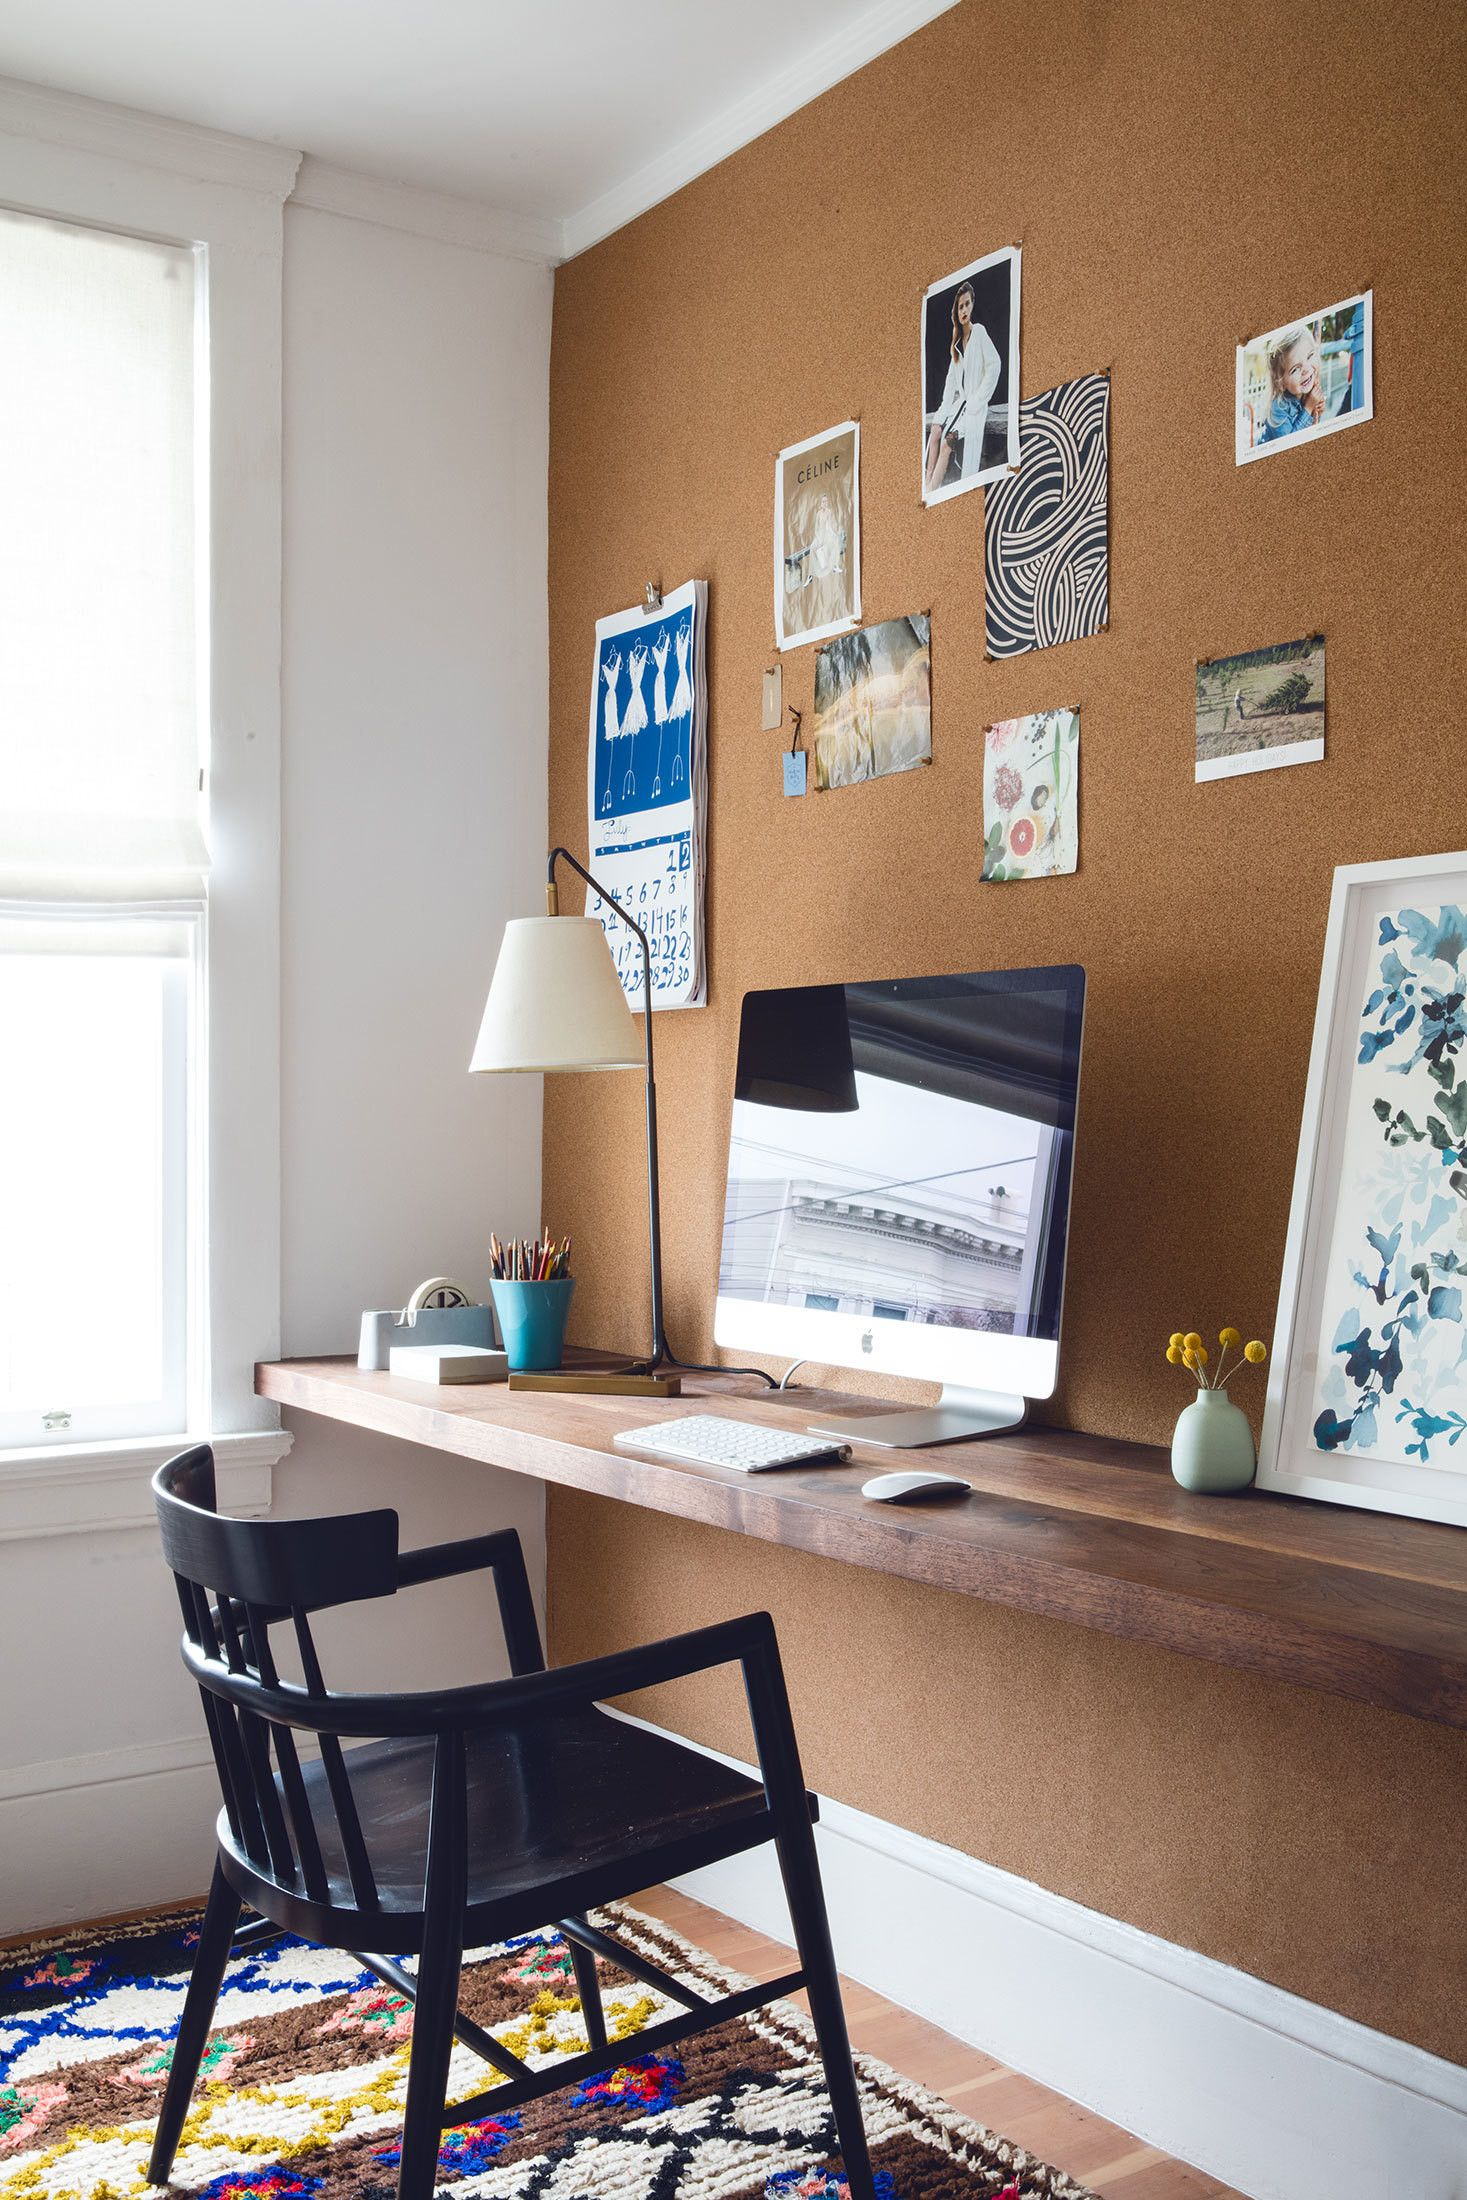 designer secrets chic ways trim your decorating budget diy floating shelves office design katie martinez san francisco workspace shelf desk with cork wall threshold one echogear